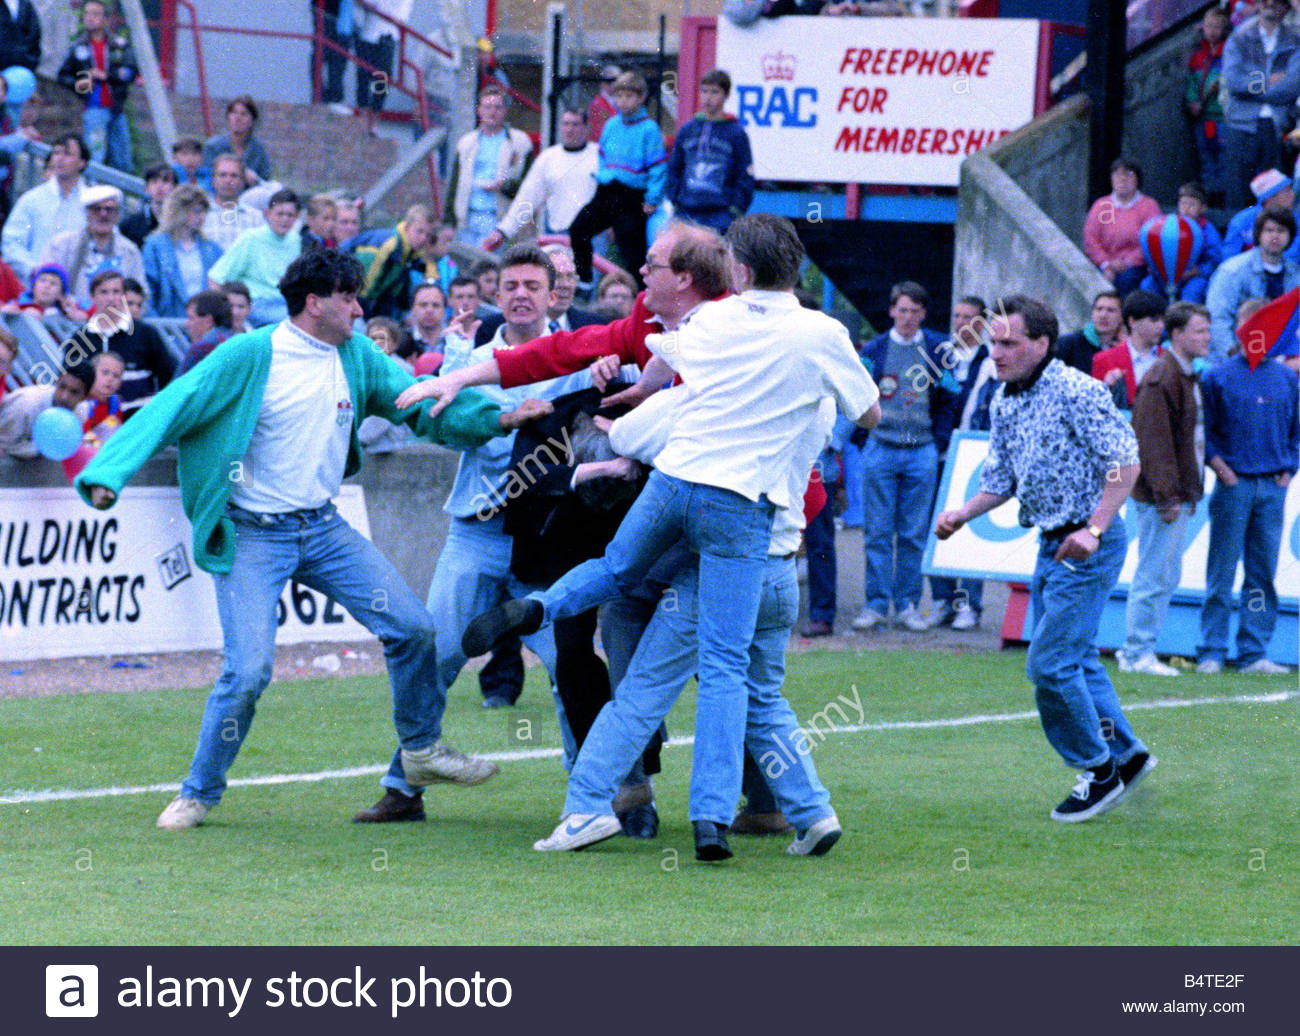 Football Violence Birmingham Stock Photos & Football